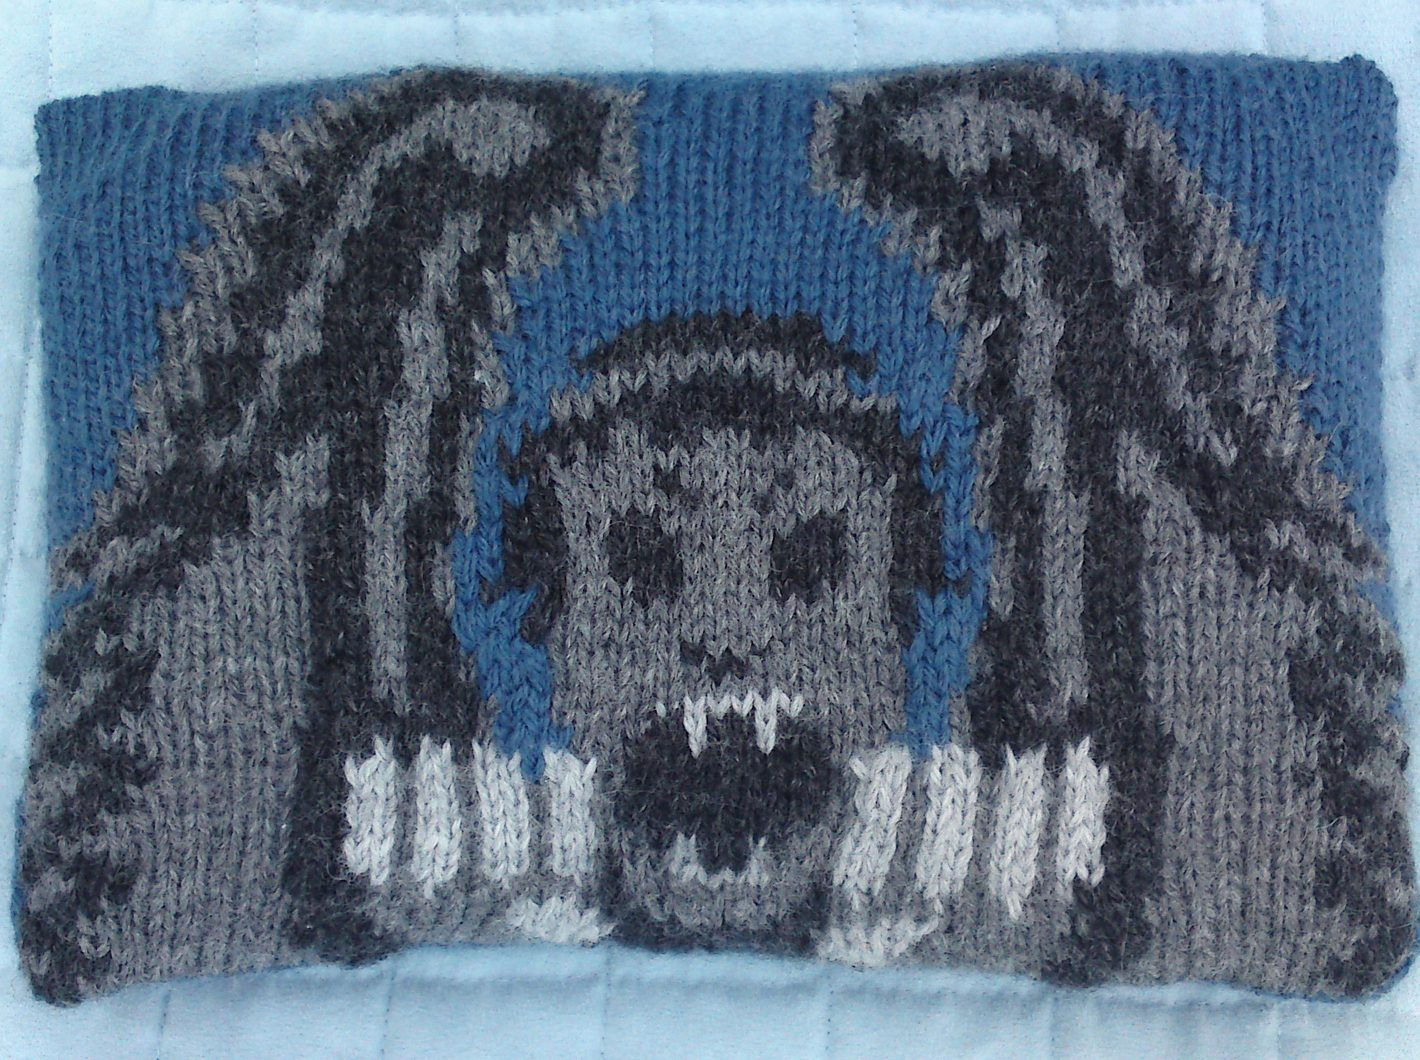 Free Knitting Pattern for Weeping Angel Attack